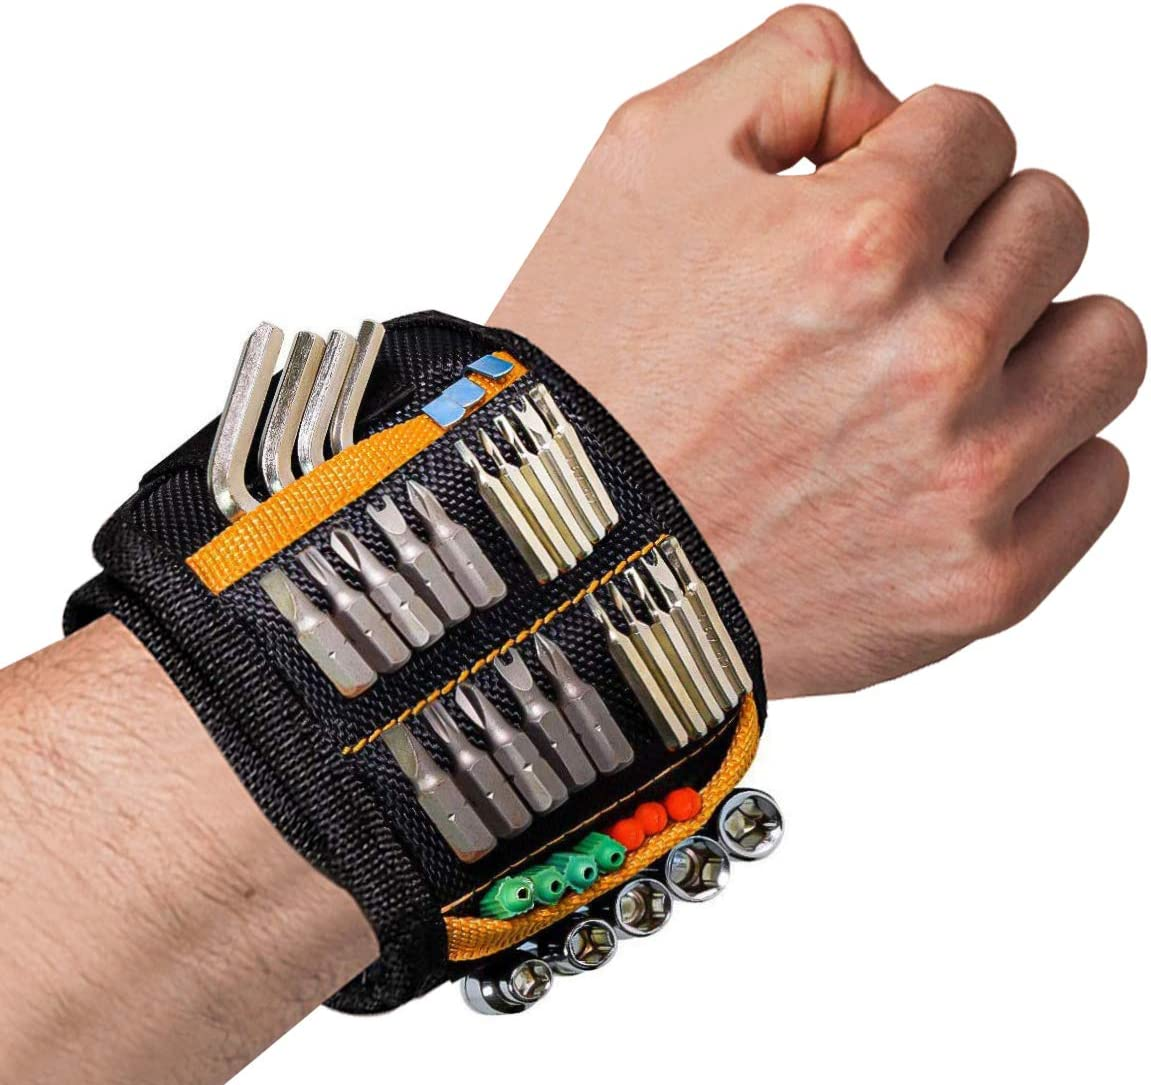 Magnetic Wristband Tool Belt with Holdin Powerful 15 Bargain sale 2021 model for Magnets